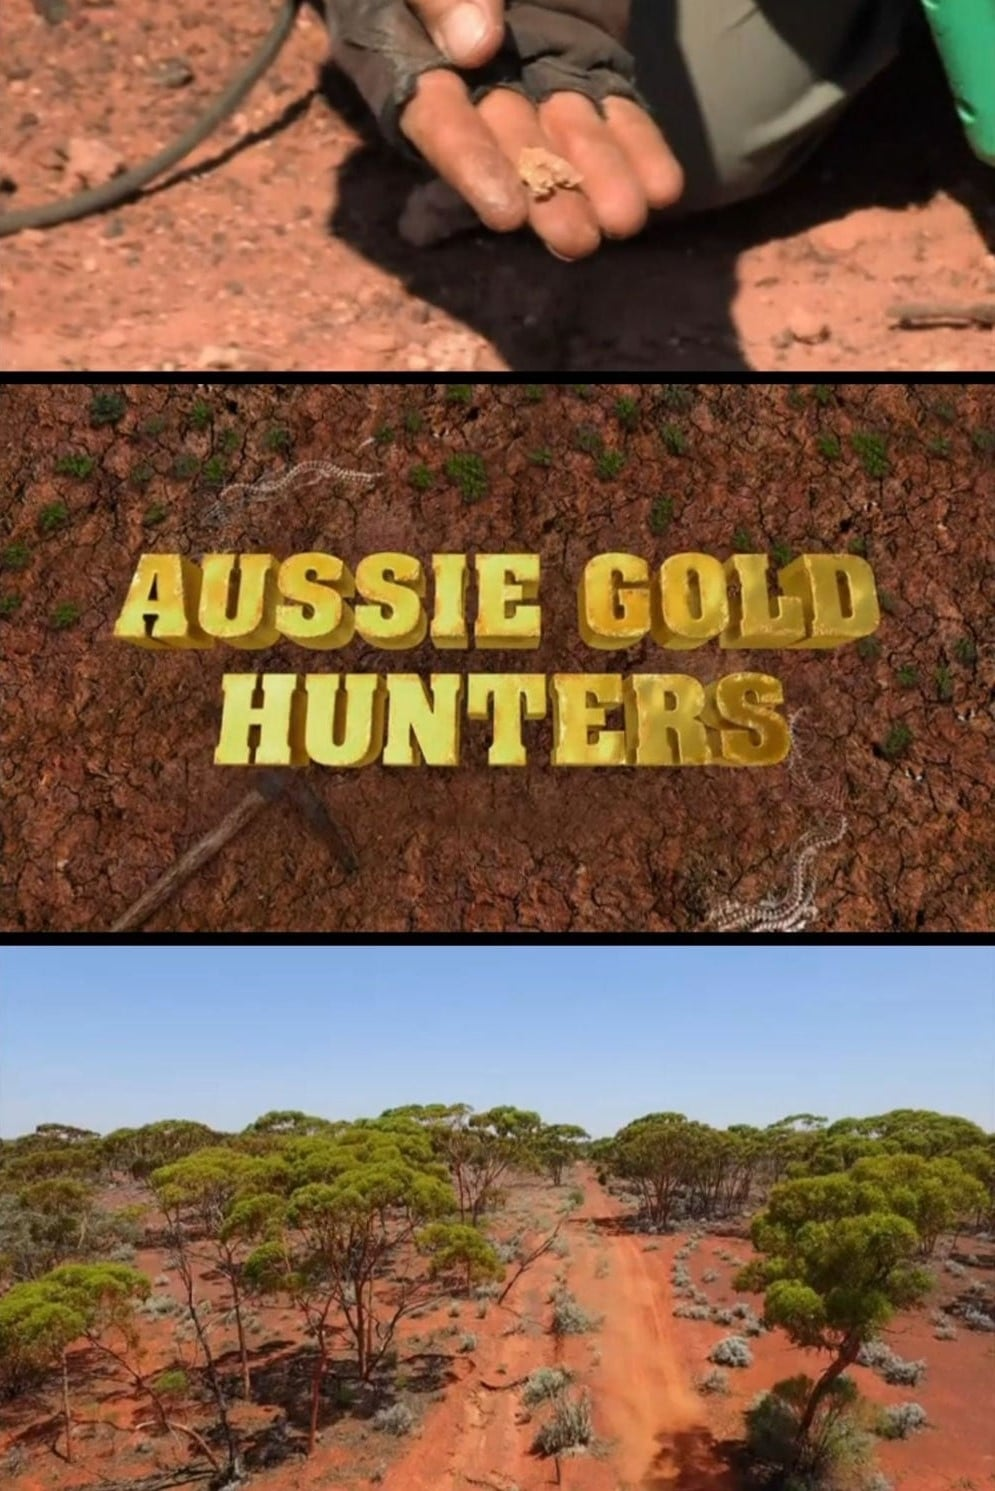 Aussie Gold Hunters (2016)